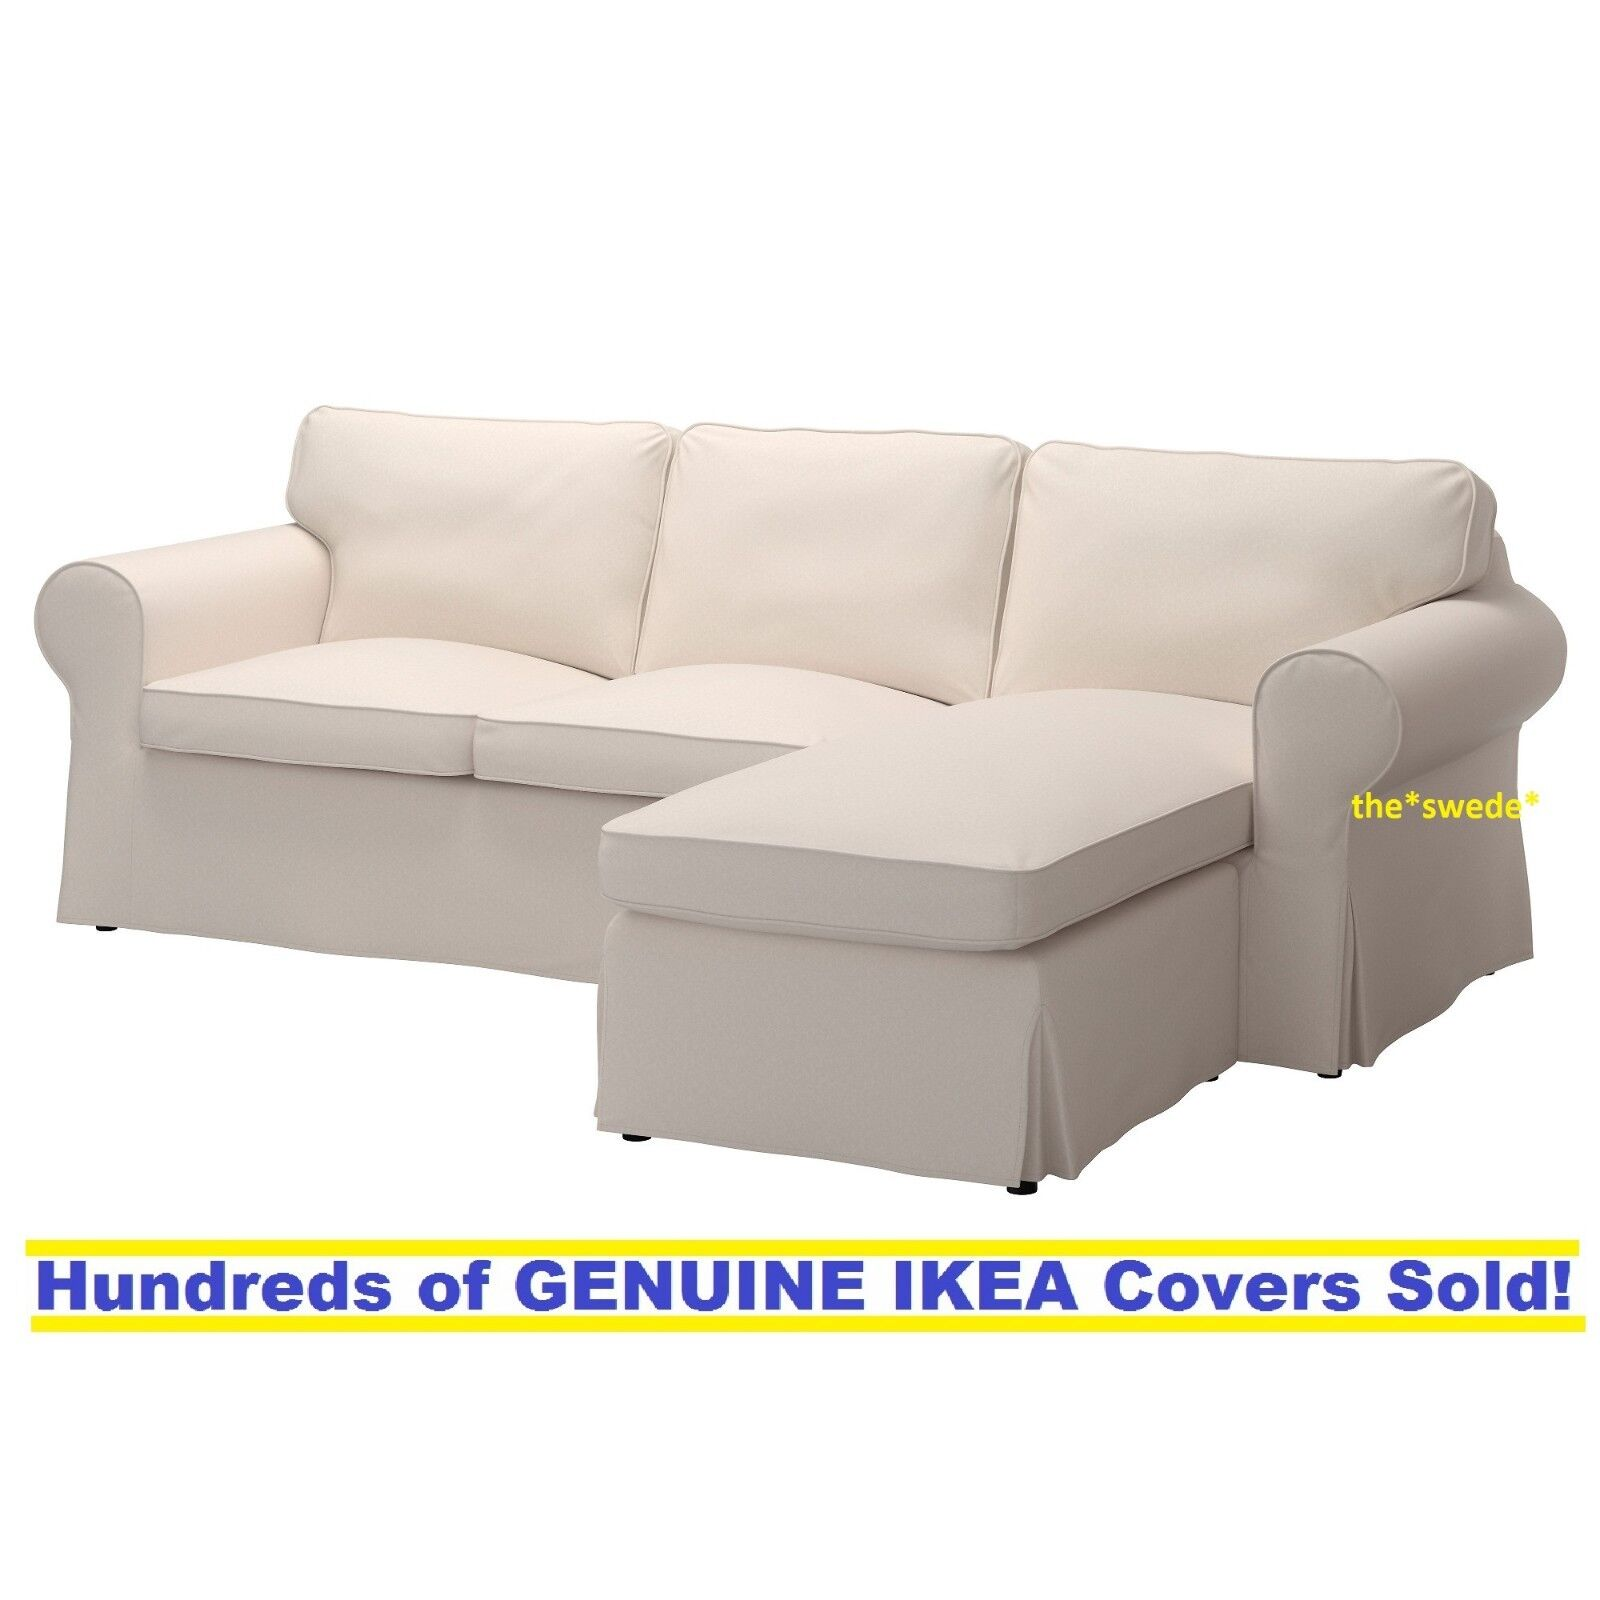 Vallentuna 4 Seat Modular Sofa With 3 Beds Ikea Ektorp 3 Seat Sectional Sofa Loveseat Chaise Slipcover Cover Lofallet Beige